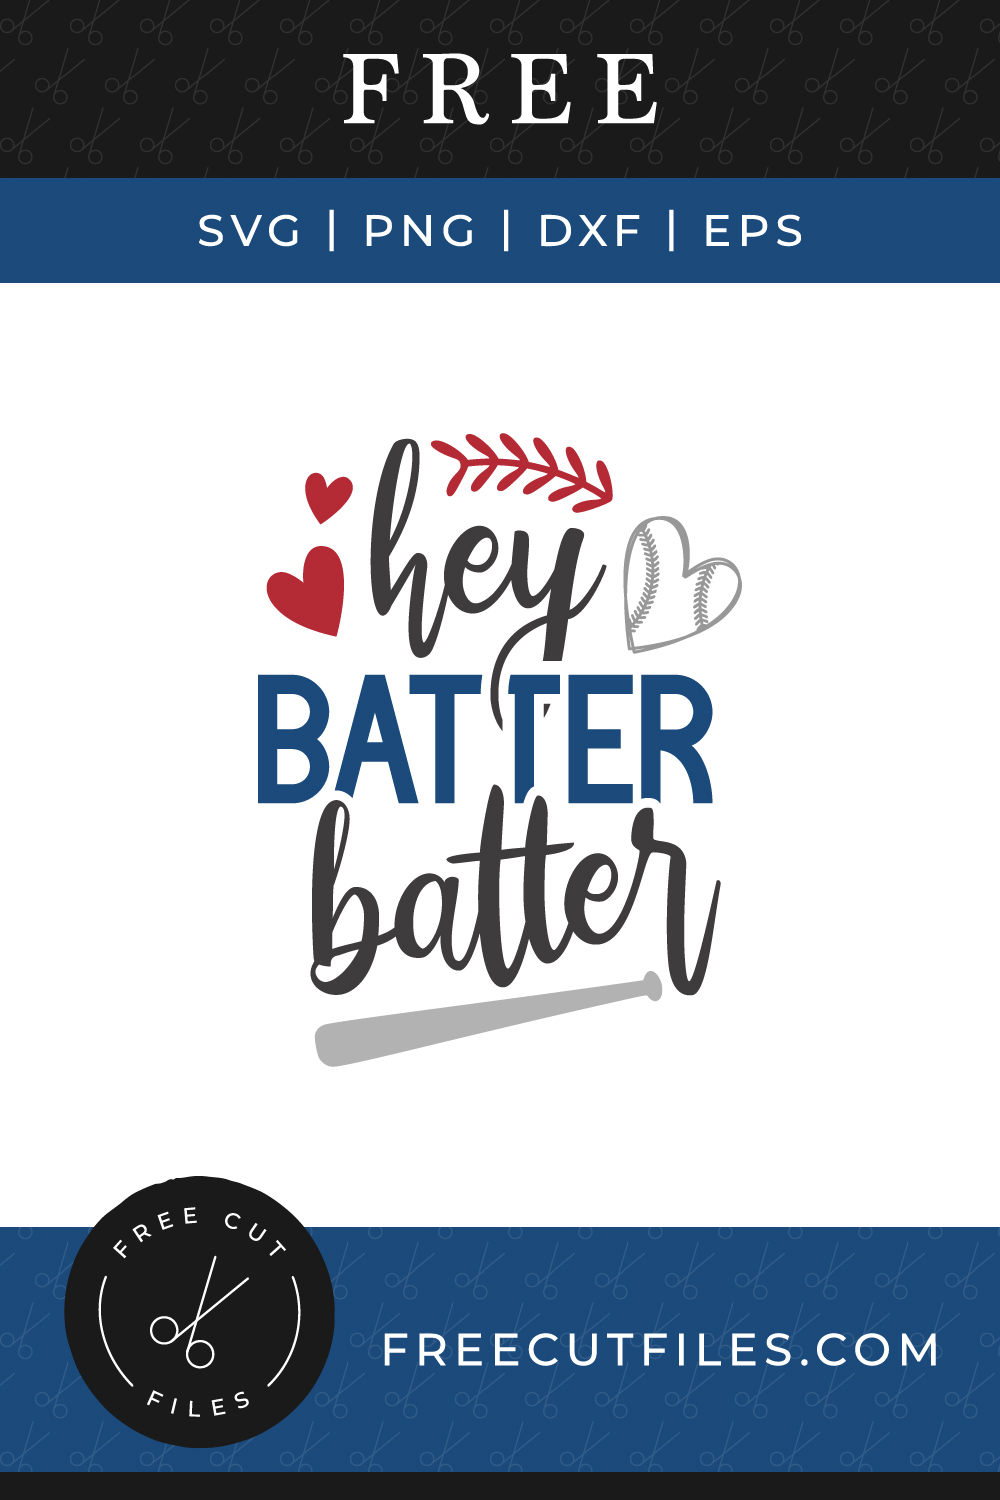 Hey Batter Batter Free Baseball SVG quote